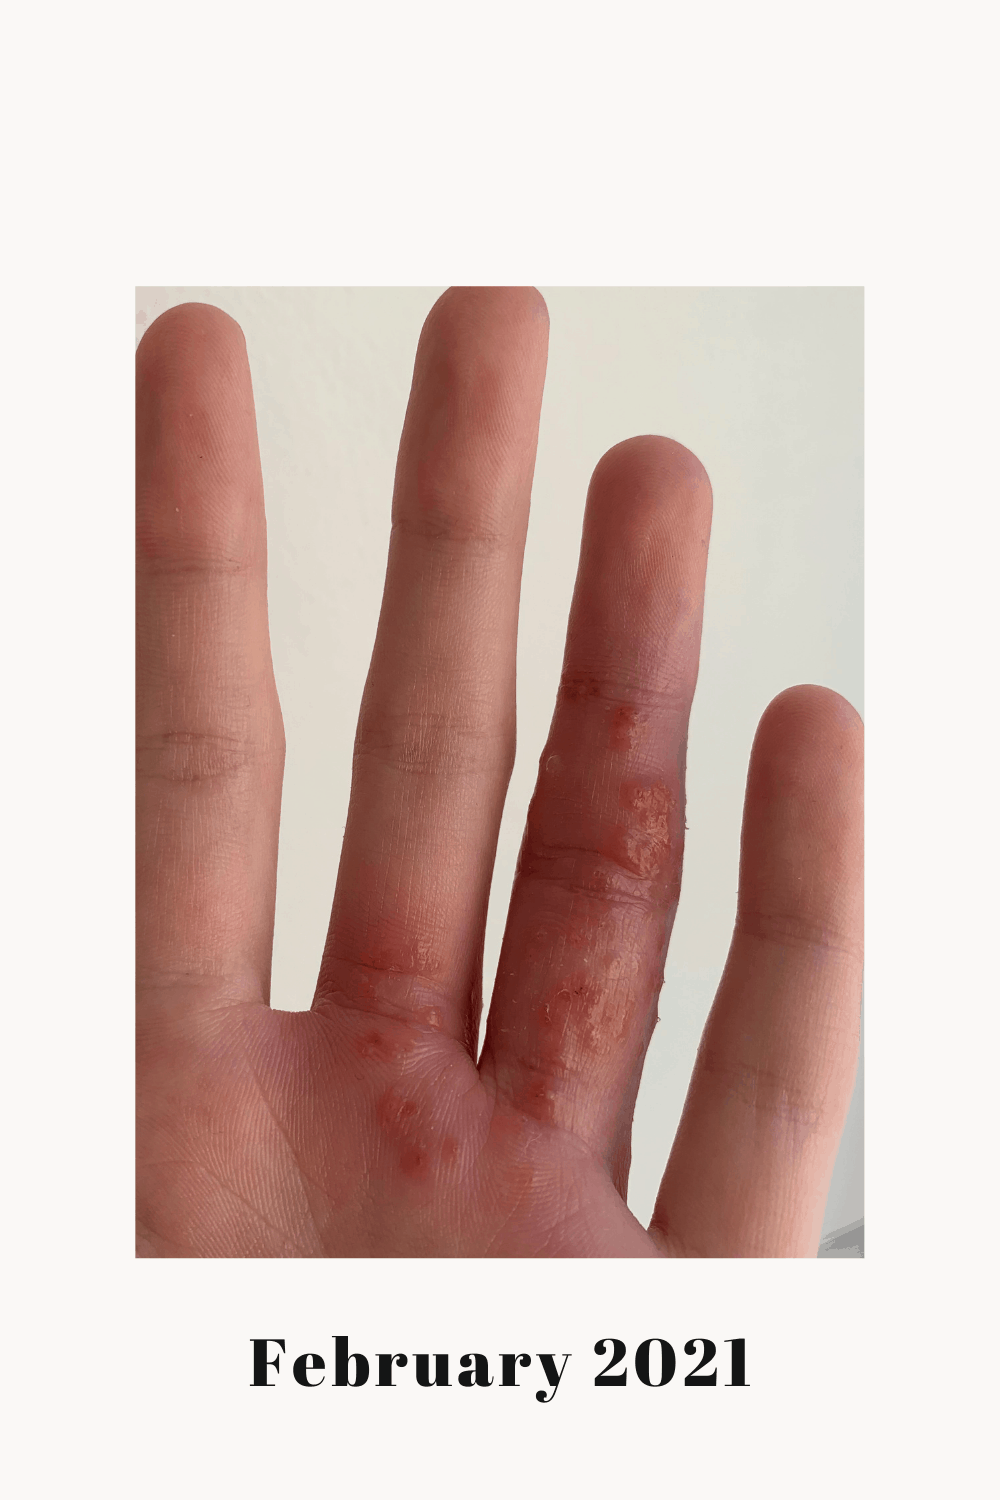 My left ring finger highly inflamed with a bacterial infection and eczema flare.